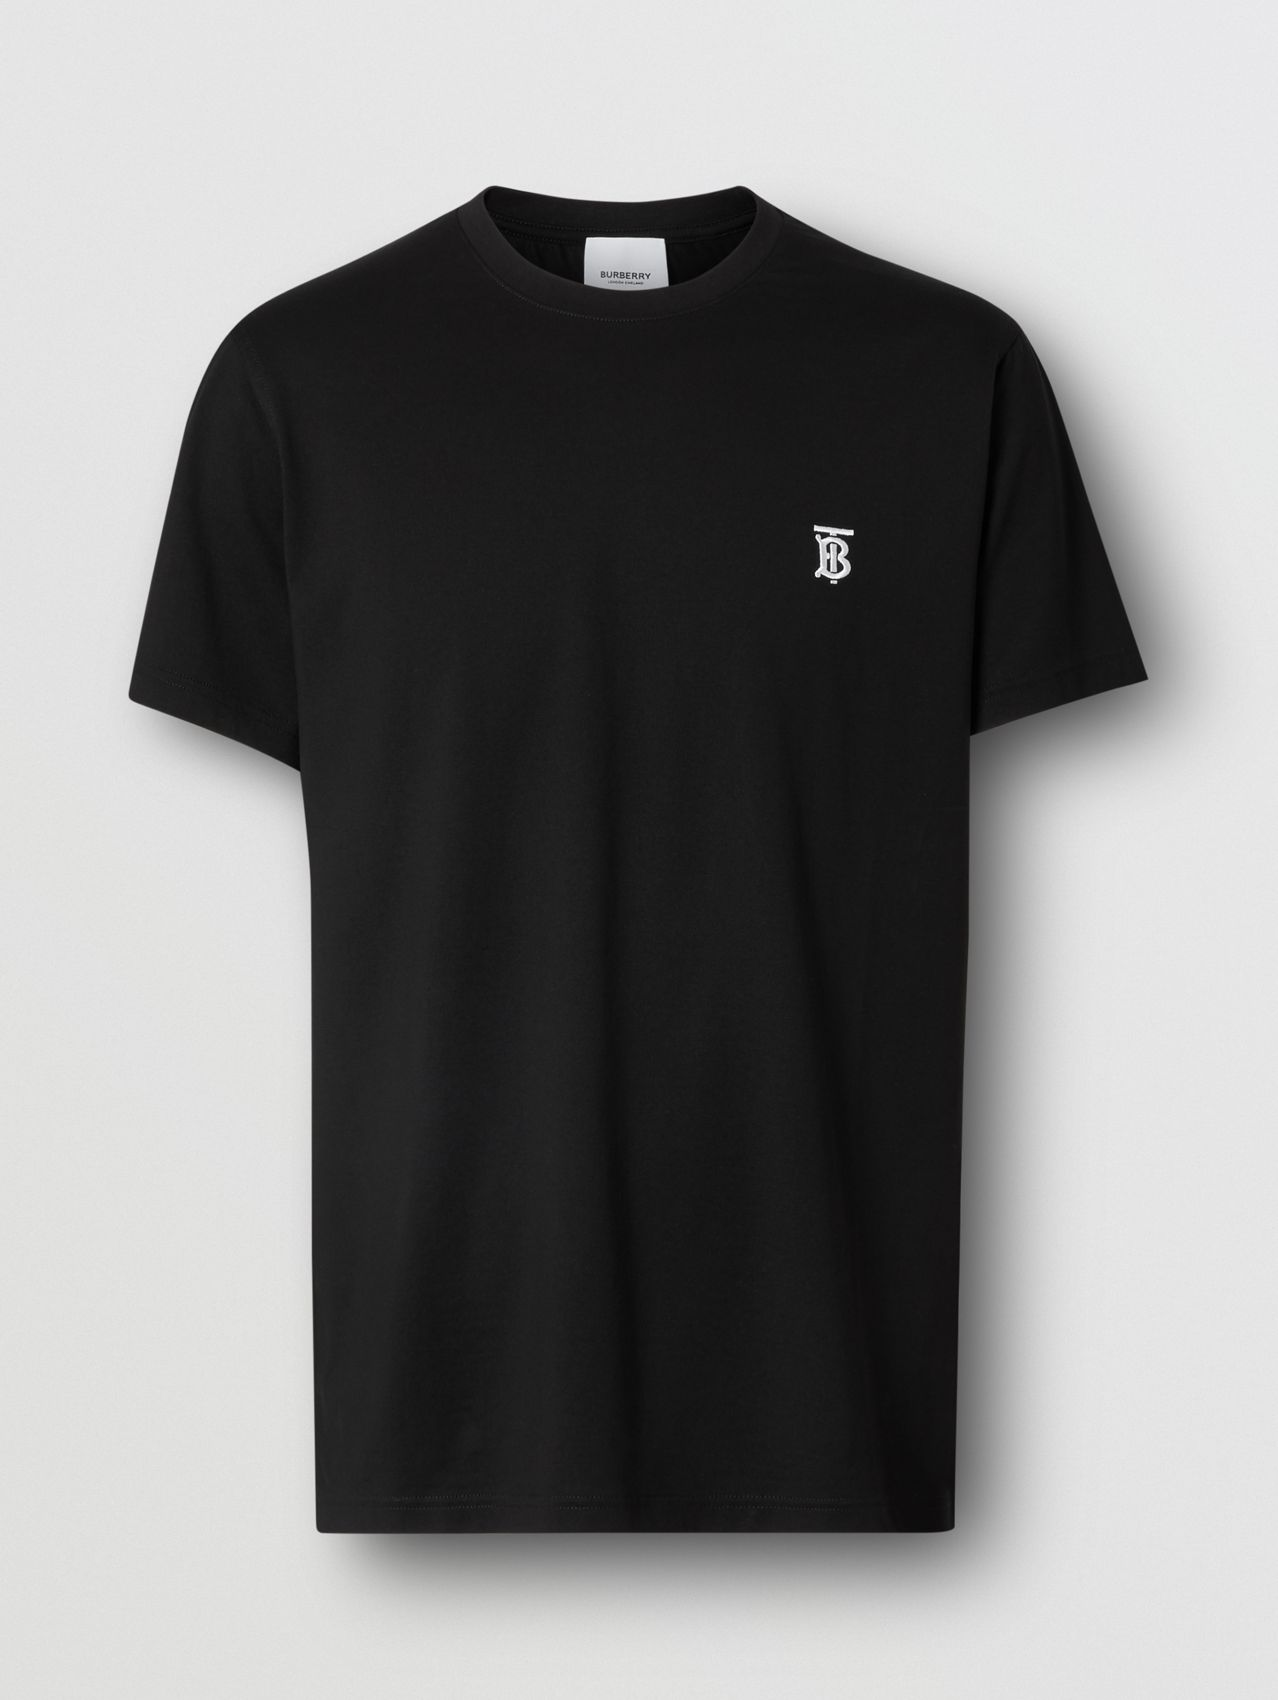 Monogram Motif Cotton T-shirt (Black)